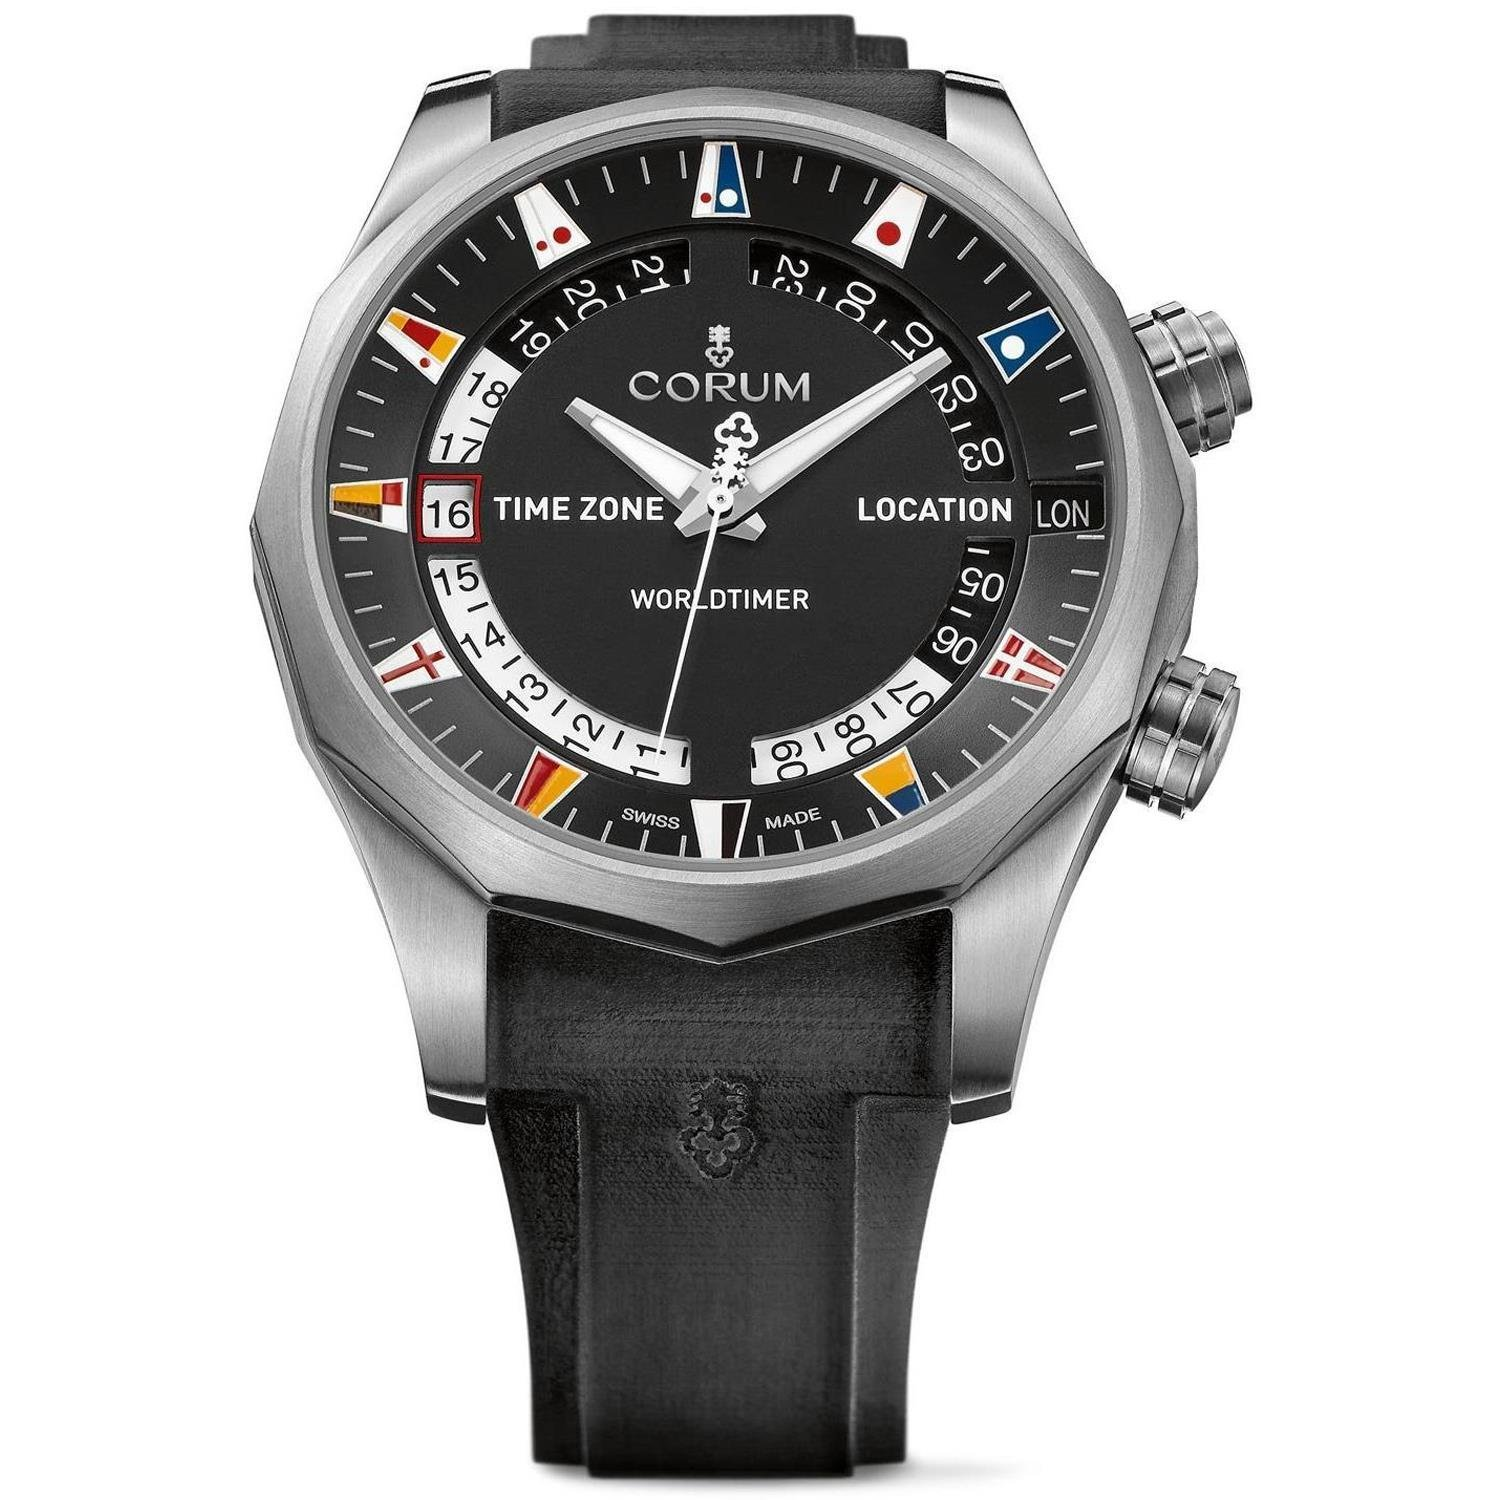 CORUM MEN'S ADMIRAL S CUP LEGEND 47 WORLDTIMER 47MM WATCH